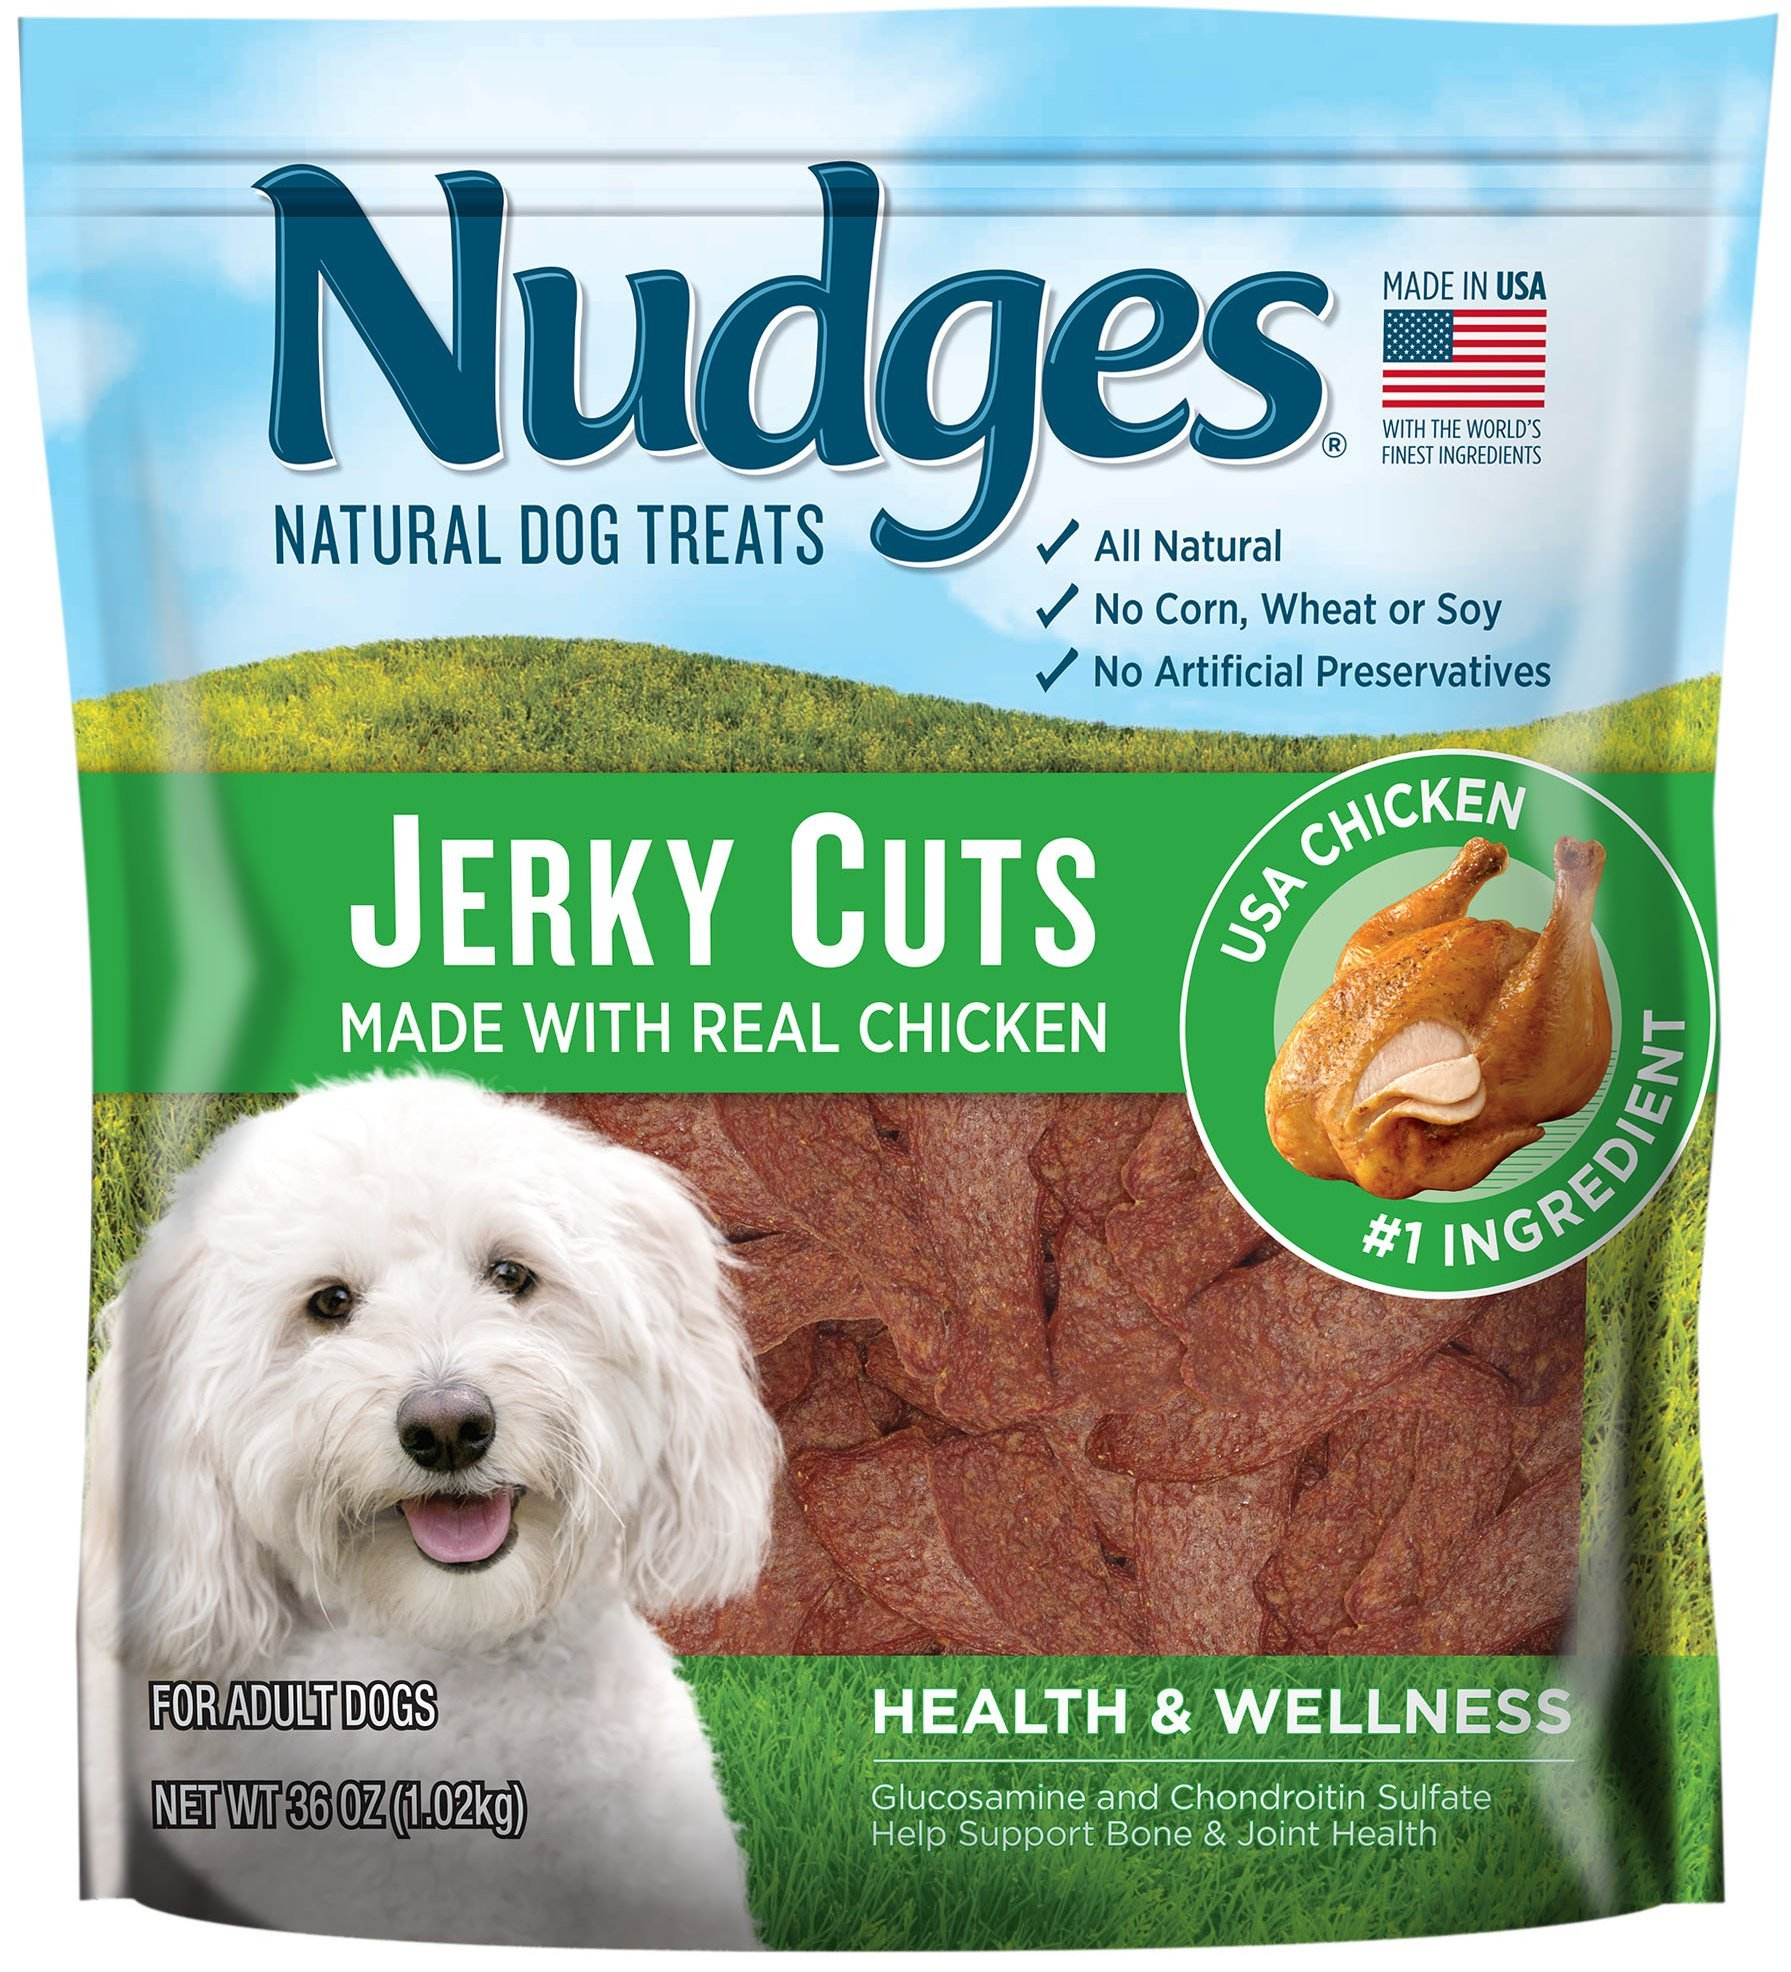 Nudges Health Wellness Chicken Jerky Dog Treats, 36 oz